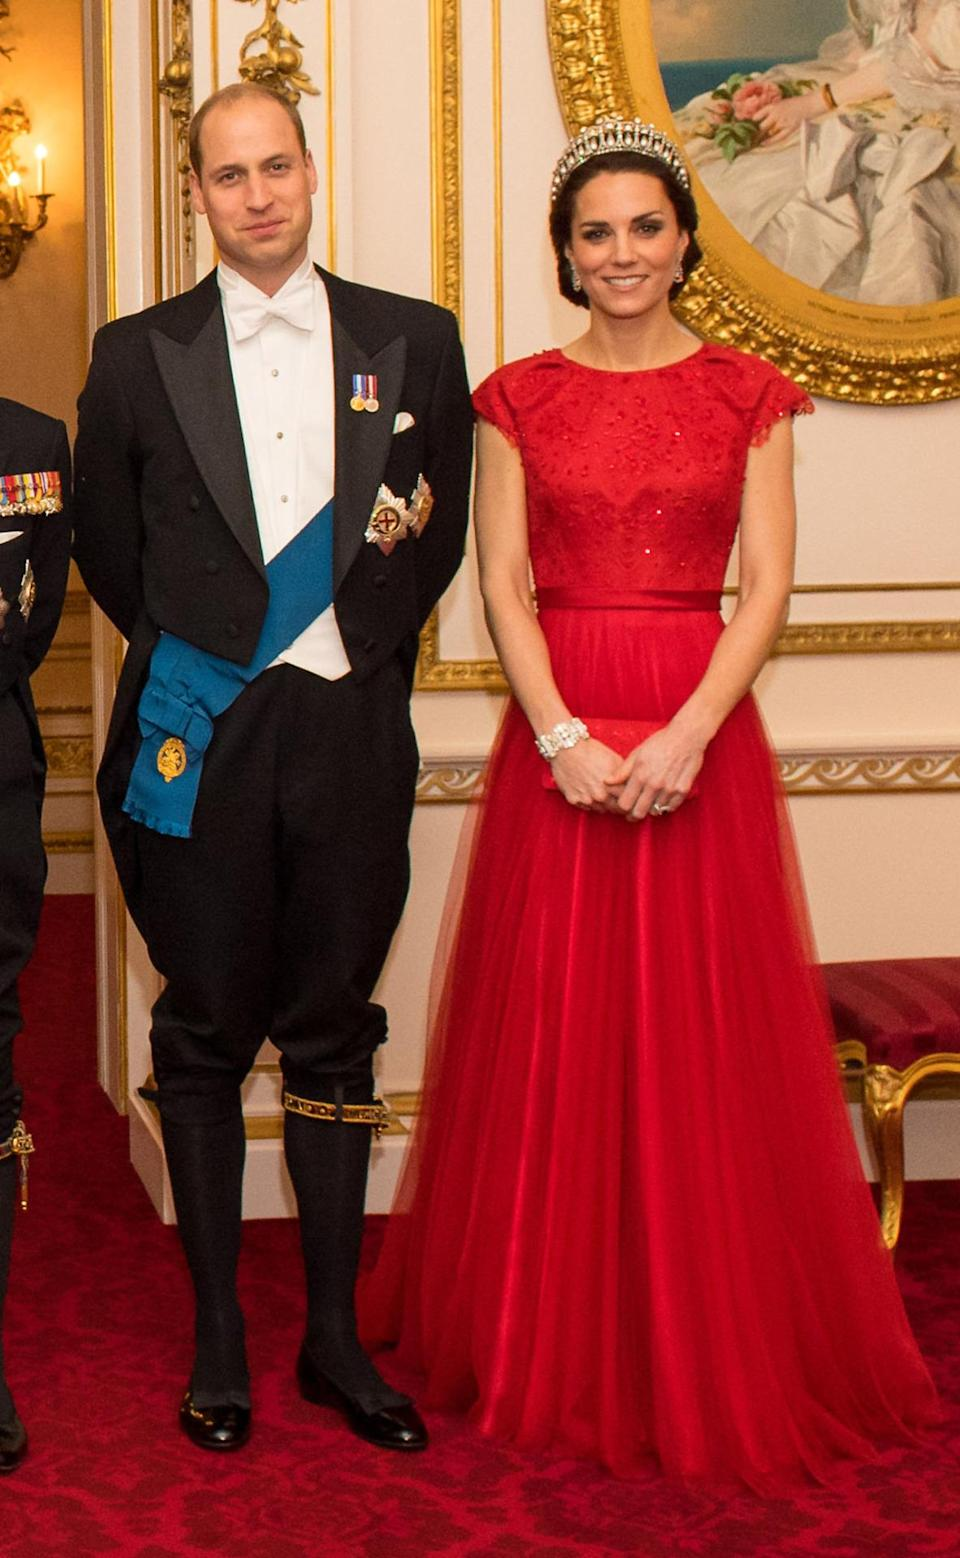 <p>The Duchess recycled yet another dress, wearing a royal red Jenny Packham gown to the 2016 annual Diplomatic Reception. First seen on her at a state banquet in 2015, the design's scarlet shade was intended to celebrate China and features Kate's favourite slim-fitting waist style. She also wore the extremely heavy Cambridge Lover's Knot tiara - which once belonged to Diana - along with chandelier earrings and a diamond bracelet given to her by William.</p><p><i>[Photo: PA]</i></p>